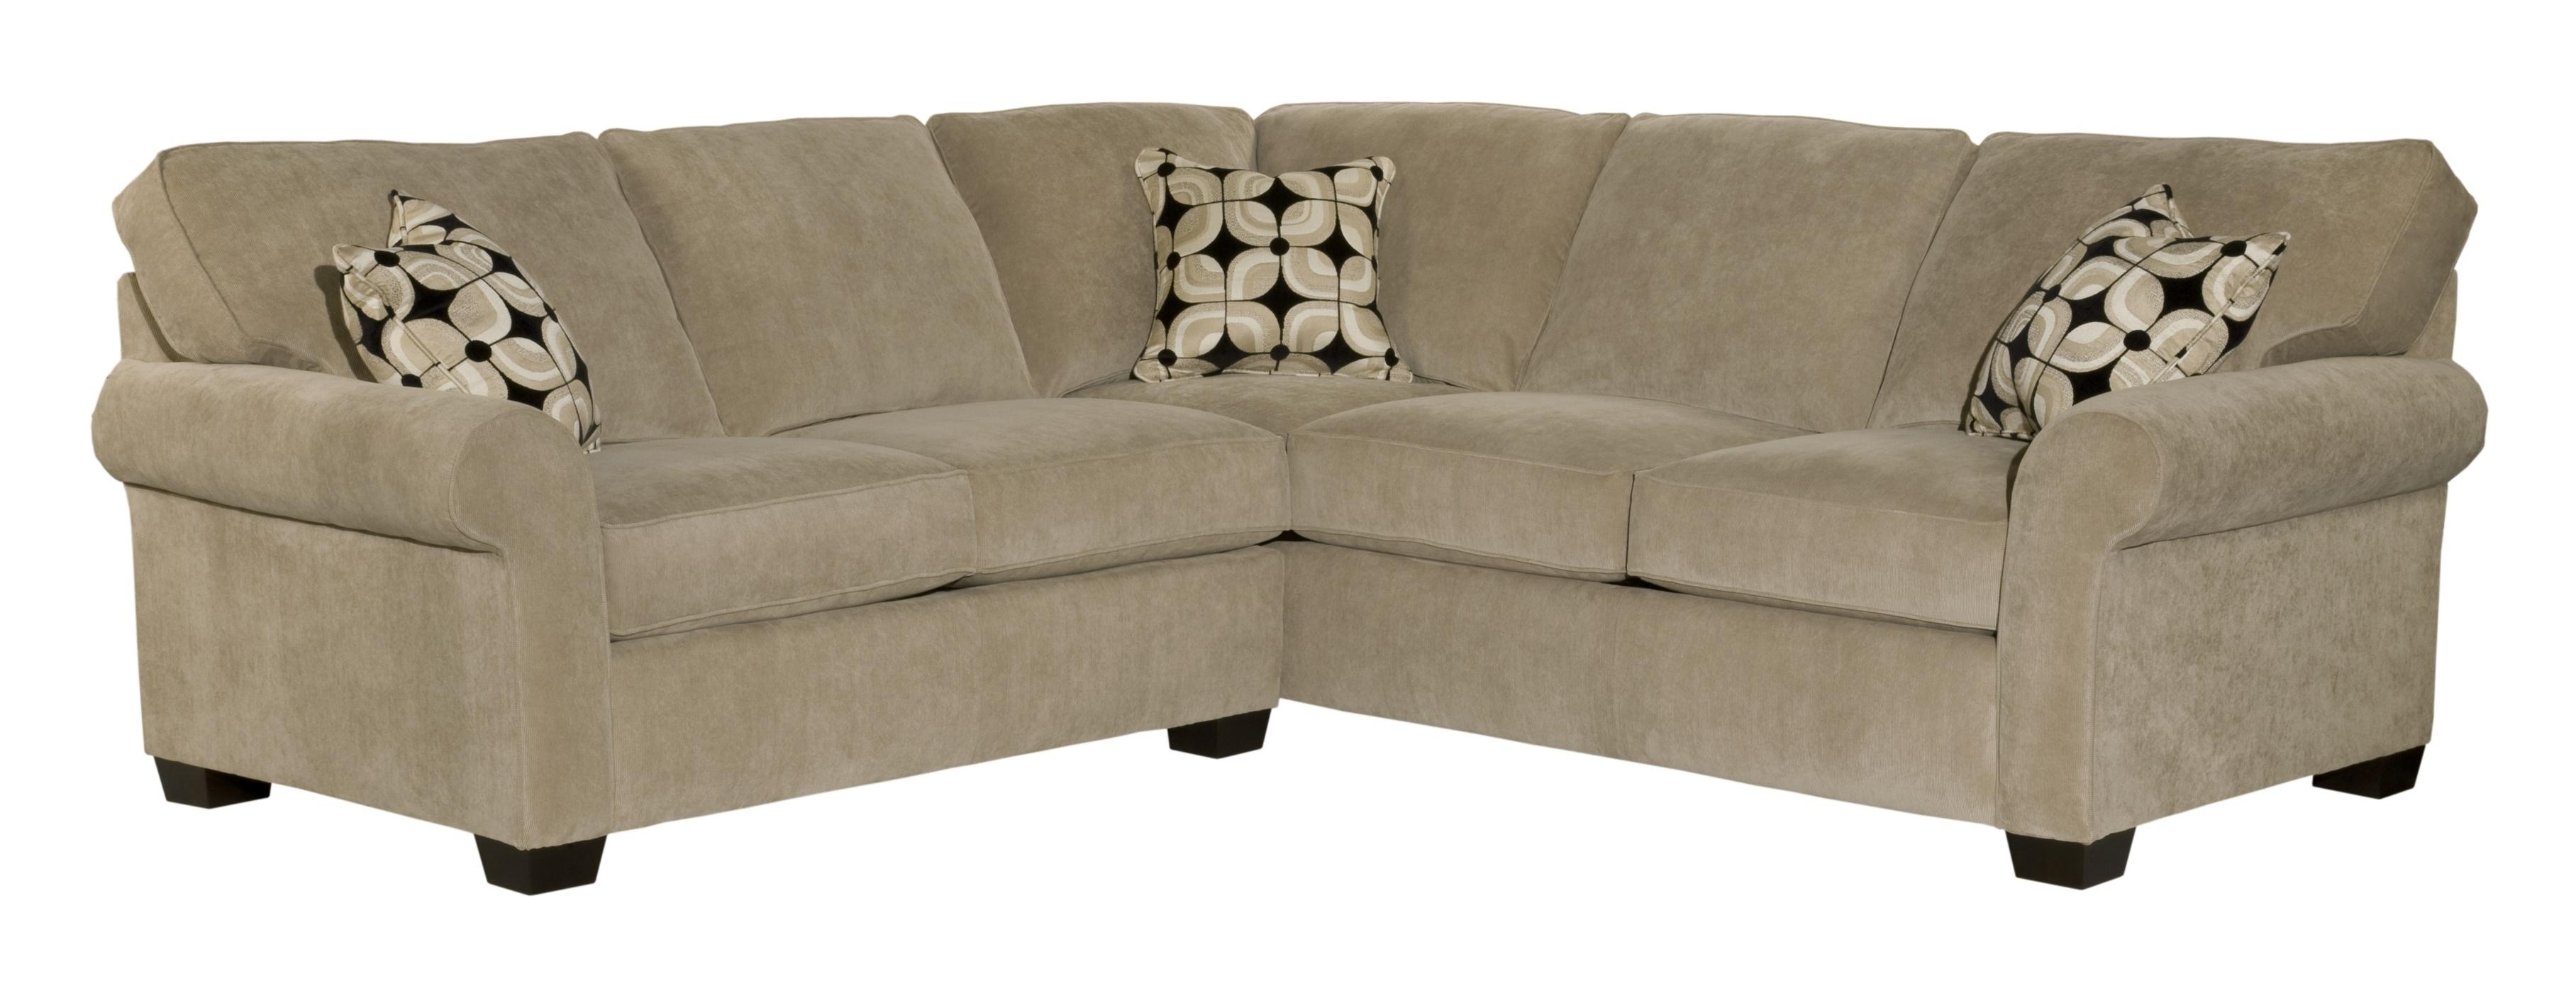 Broyhill Furniture Ethan Two Piece Sectional With Corner Sofa - Ahfa throughout Benton 4 Piece Sectionals (Image 9 of 30)